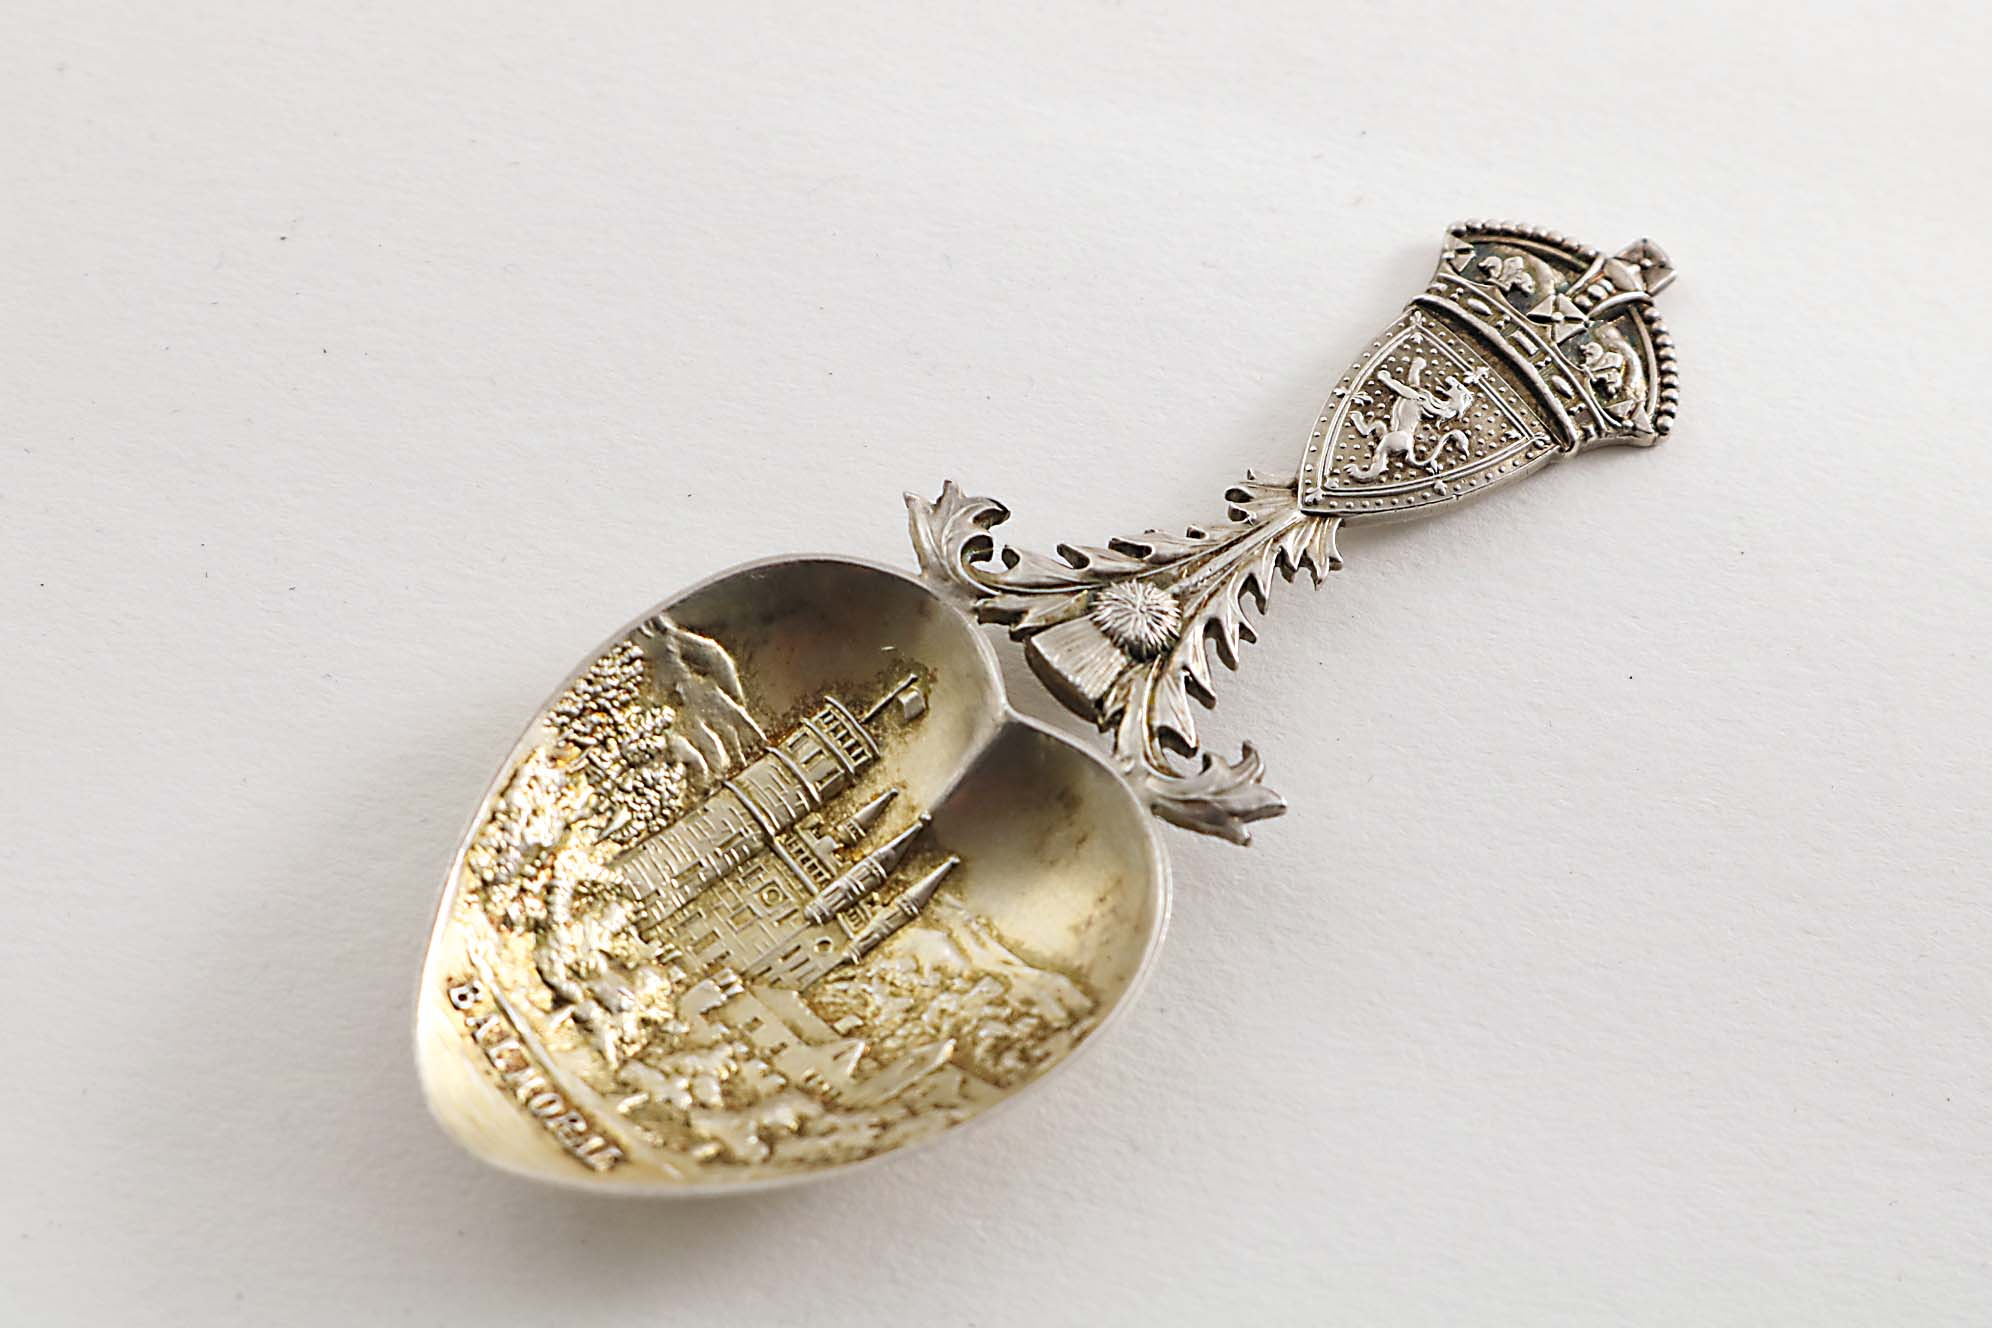 Lot 617 - AN EDWARDIAN PARCELGILT CAST CADDY SPOON with the Arms of Scotland, The Royal Crown and a Thistle on